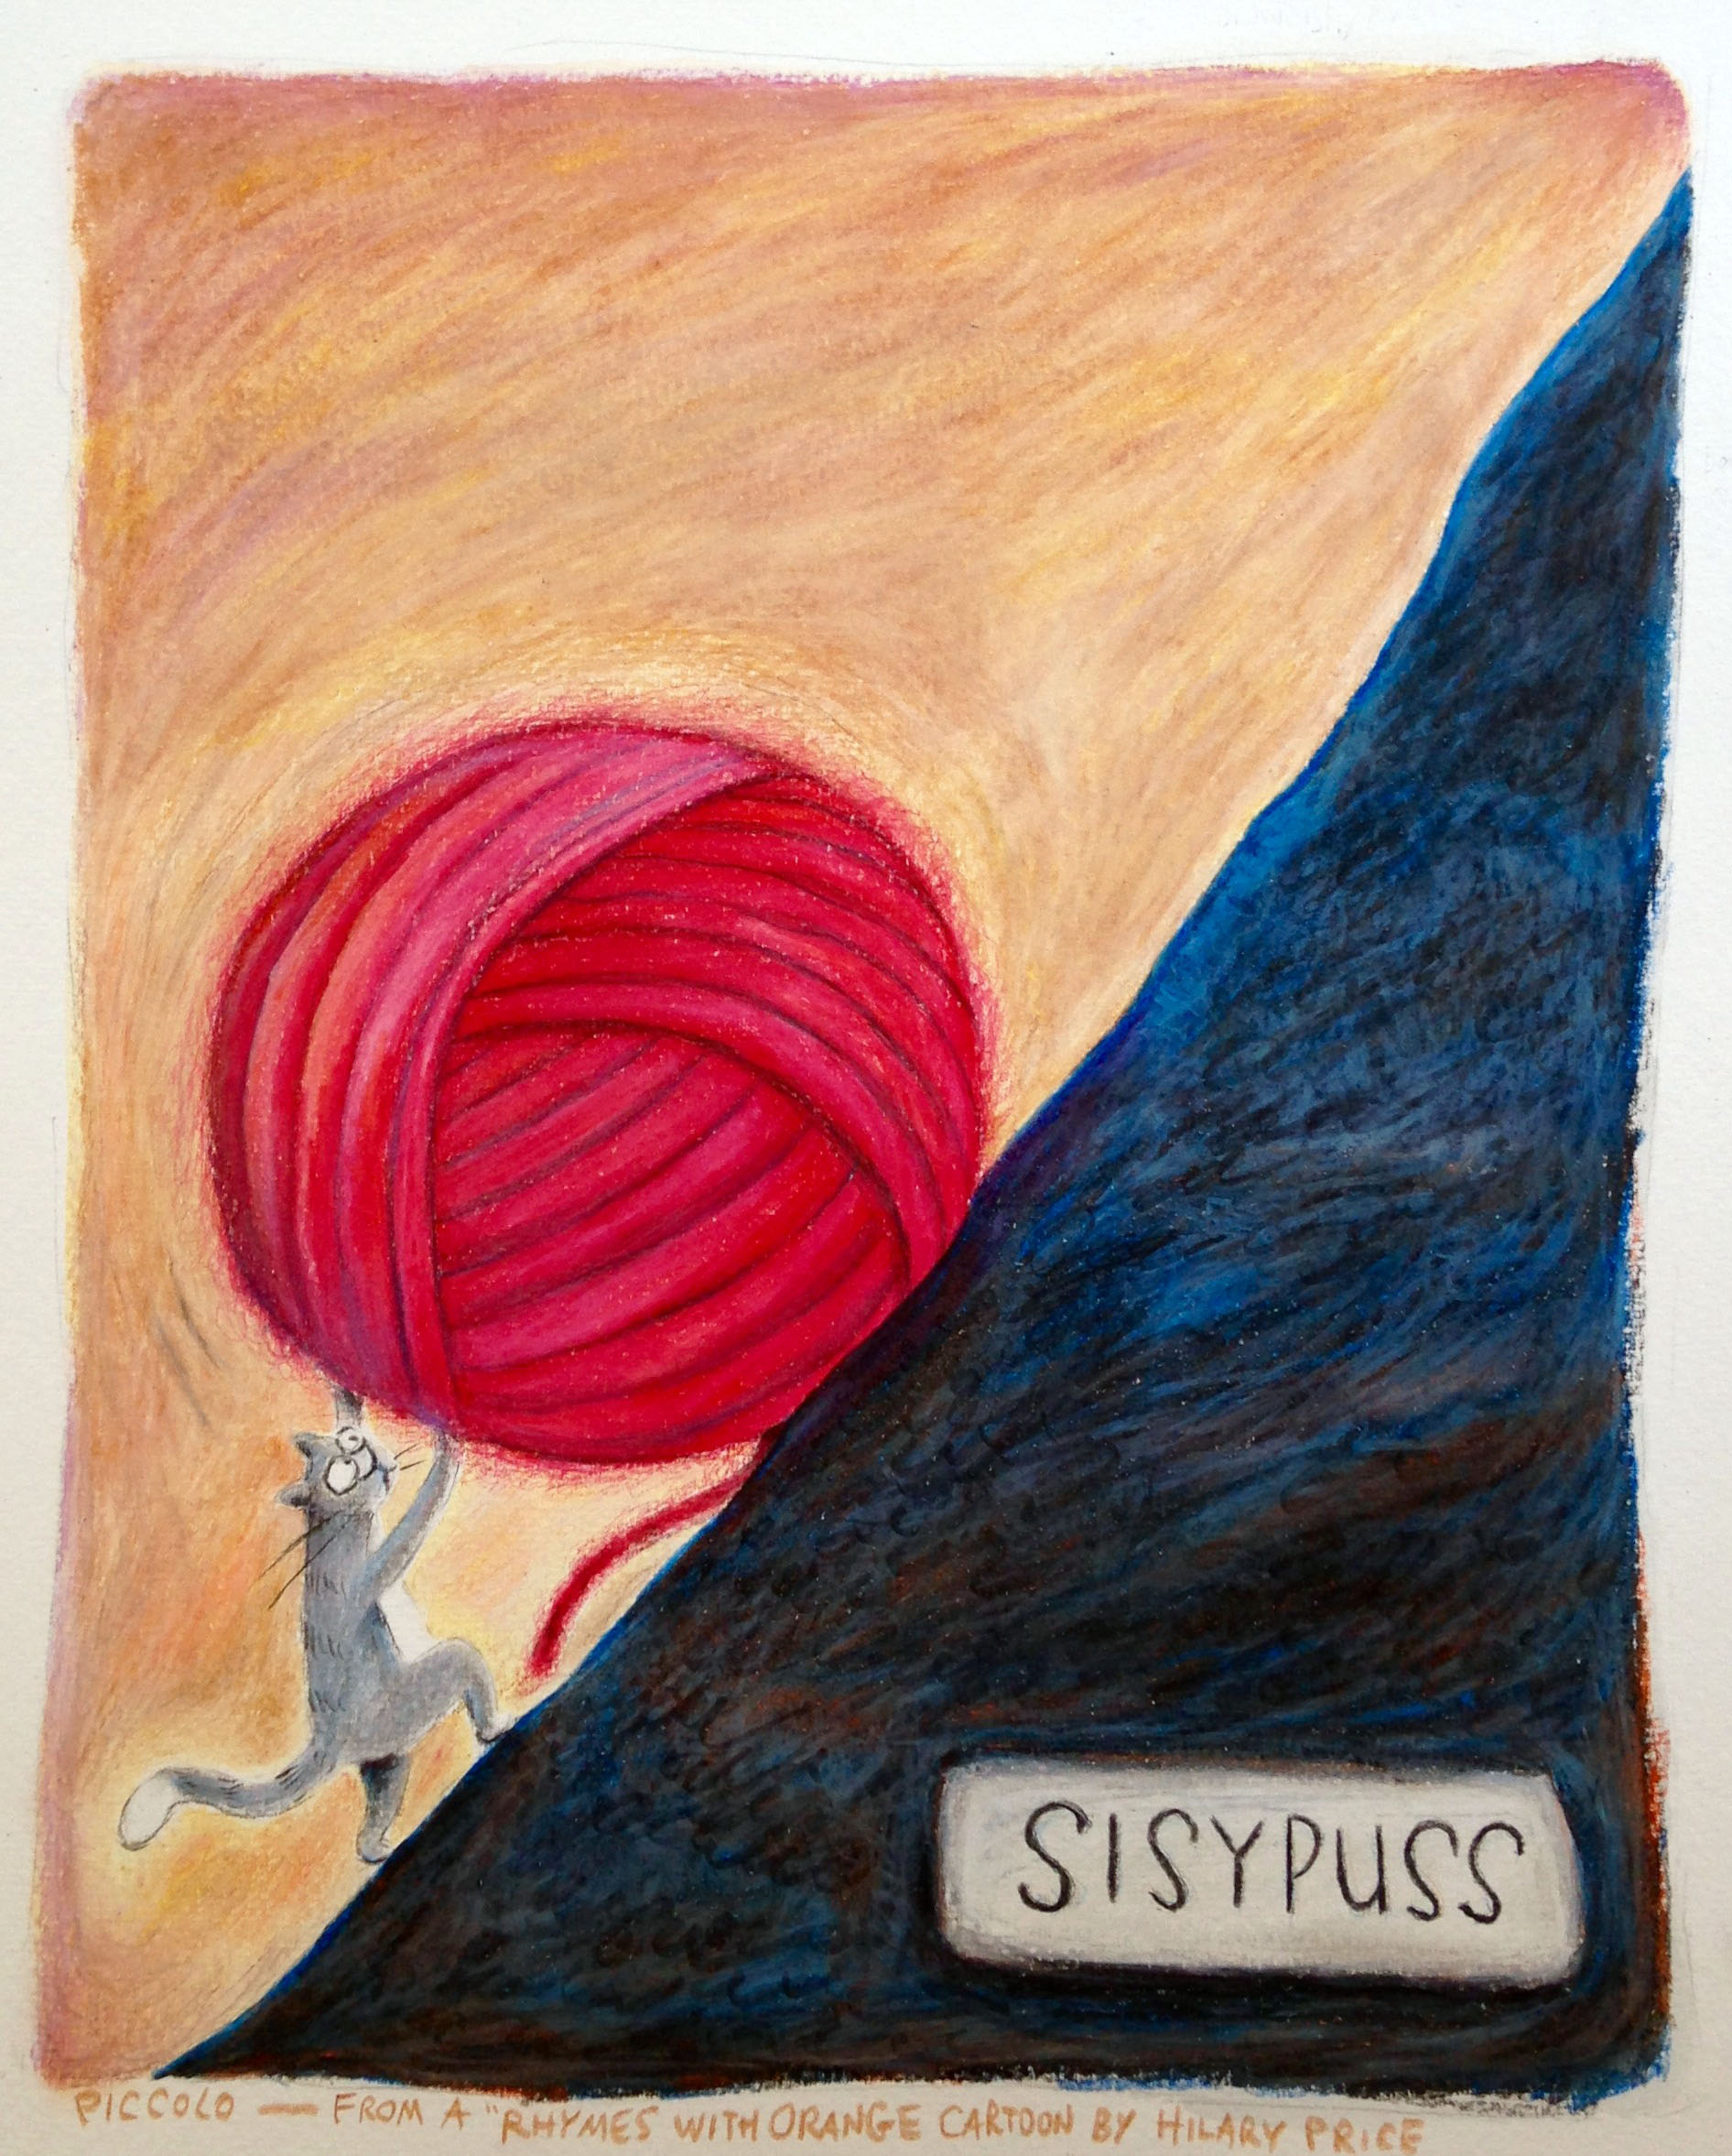 """Sisypuss"" I took a Rhymes With Orange cartoon by Hilary Price (my collaborator!) and rendered it in oil pencils. When they're layered, oil pencils have the look of oil paint. While I like the result, I hate how physically exhausting they could be, especially if you're working on a large piece. I got a real workout on my arm that day!"